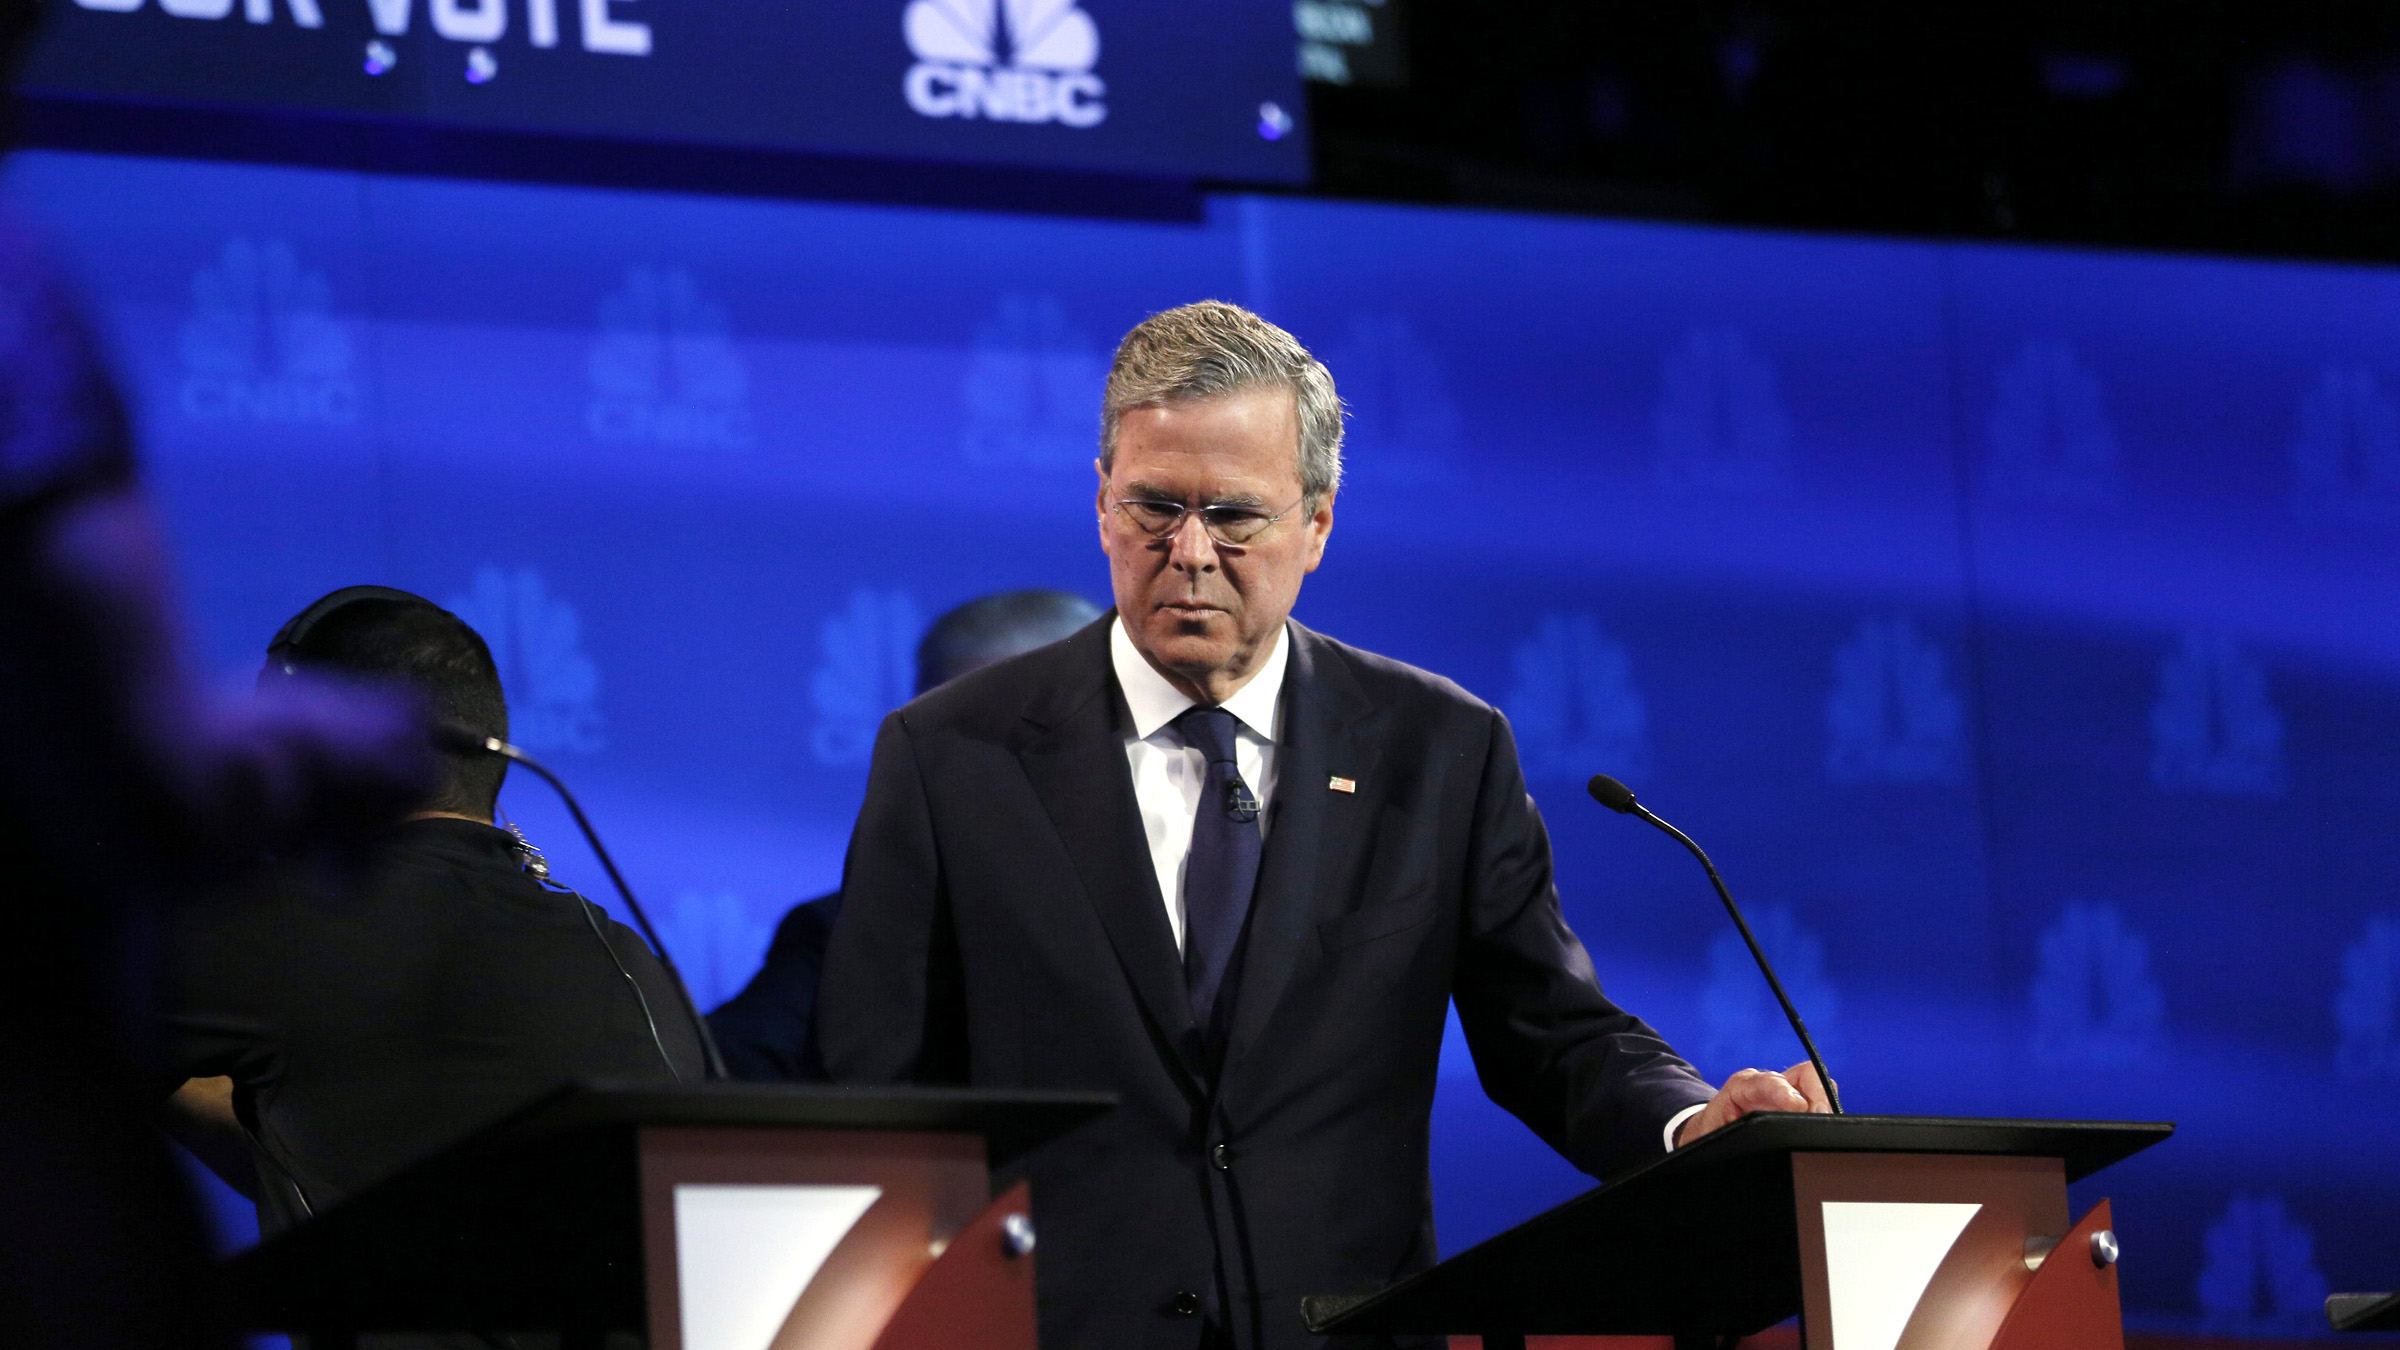 Republican U.S. presidential candidate and former Florida Governor Jeb Bush pauses at his podium in the midst of a commercial break at the 2016 U.S. Republican presidential candidates debate held by CNBC in Boulder, Colorado, October 28, 2015.